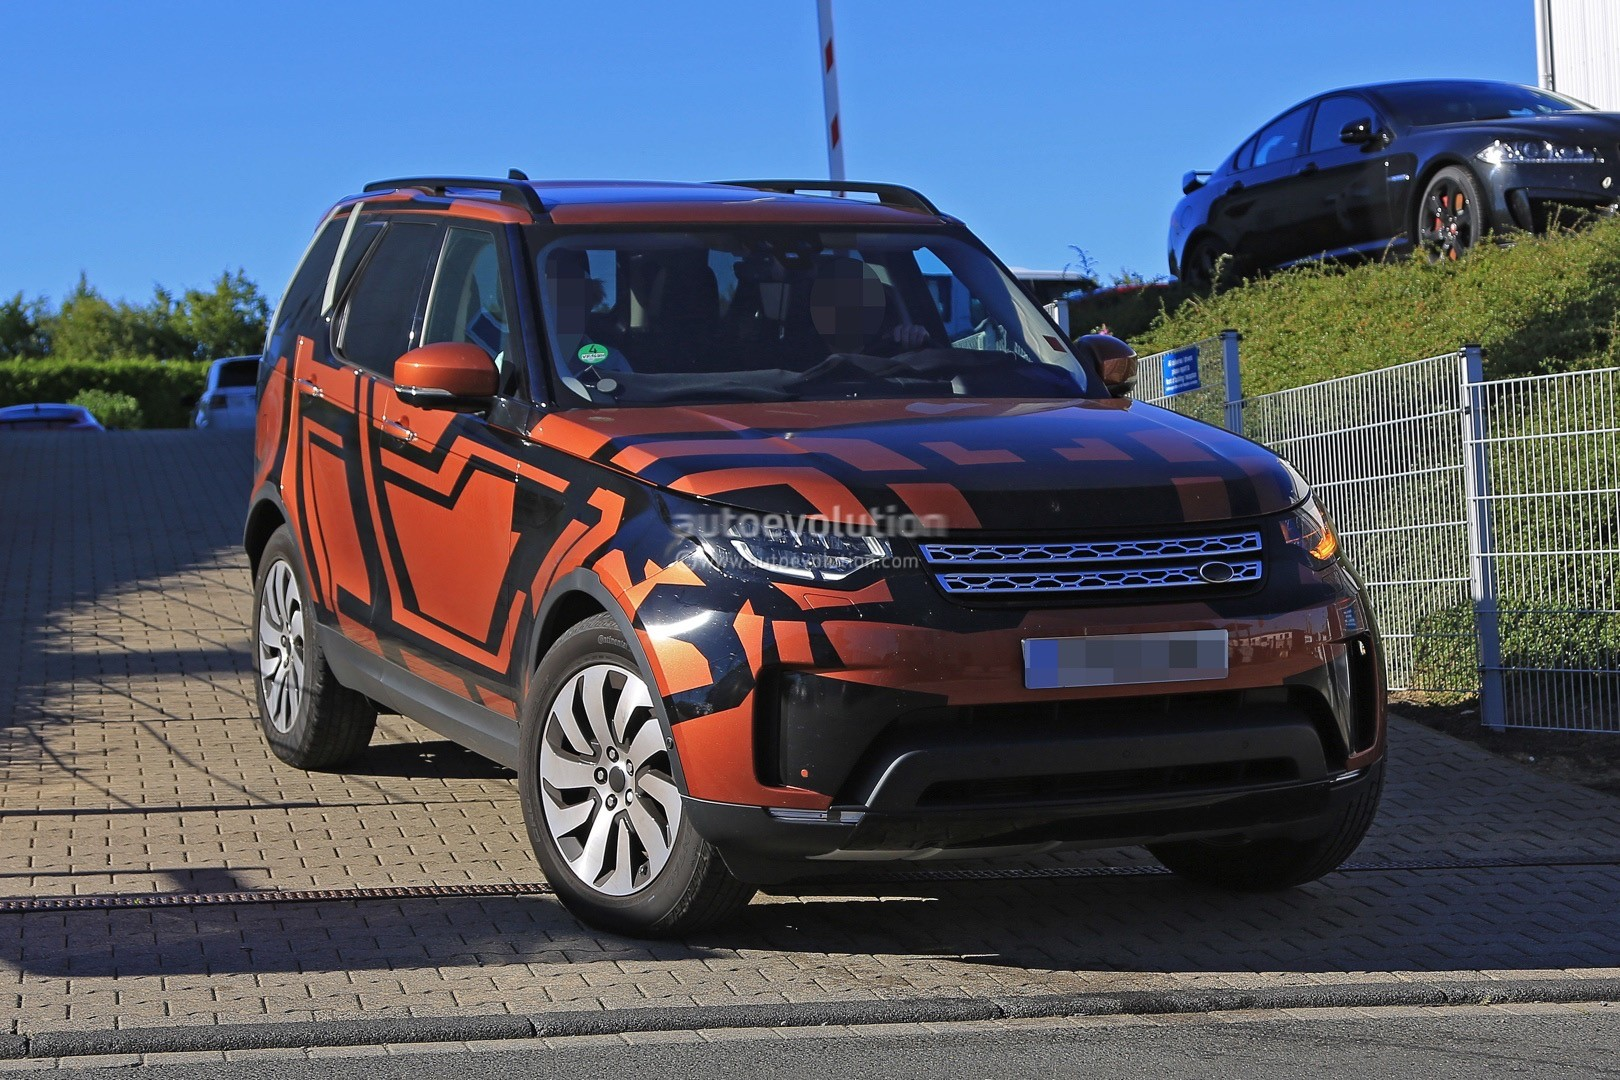 Land Rover Discovery Land Rover Lr Spied Reveals More Skin moreover Land Rover Discovery Sport Hse Si furthermore Armrest Discovery Sport Mittelarmlehne Accoudoir Reposabrazos Bracciolo furthermore St Z Bjeep Grand Cherokee Srt Bwheel additionally Hummer Hx Wallpapers Hd. on 2017 land rover discovery sport